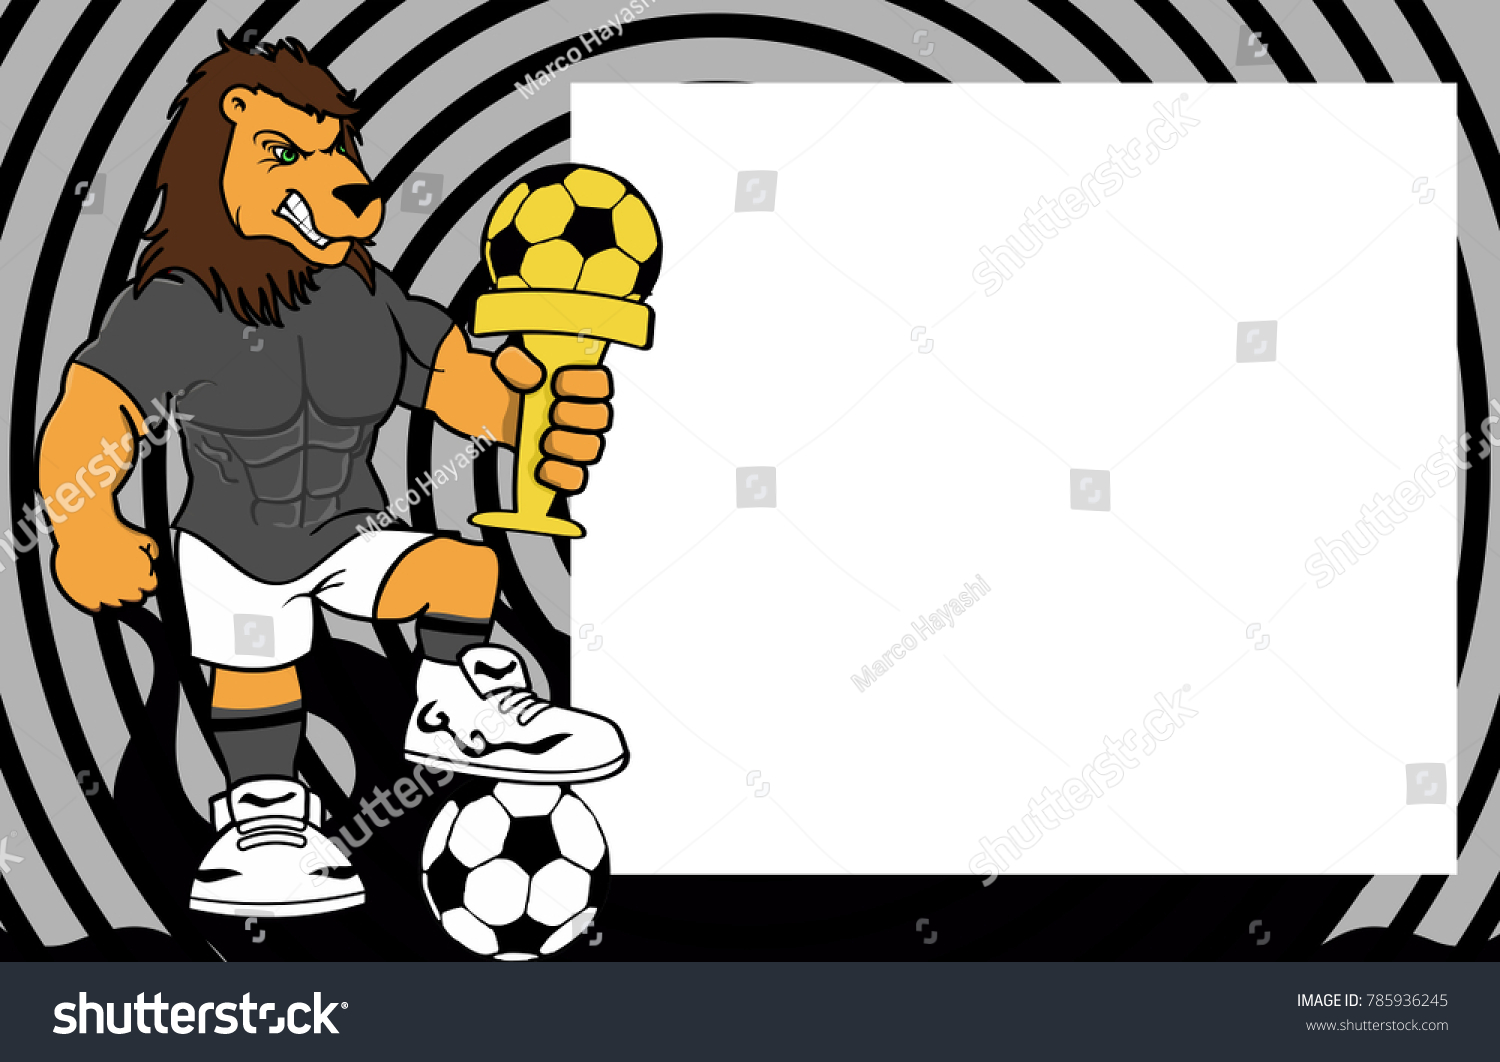 Strong sporty lion futbol soccer player stock vector 785936245 strong sporty lion futbol soccer player cartoon picture frame background in vector format jeuxipadfo Images